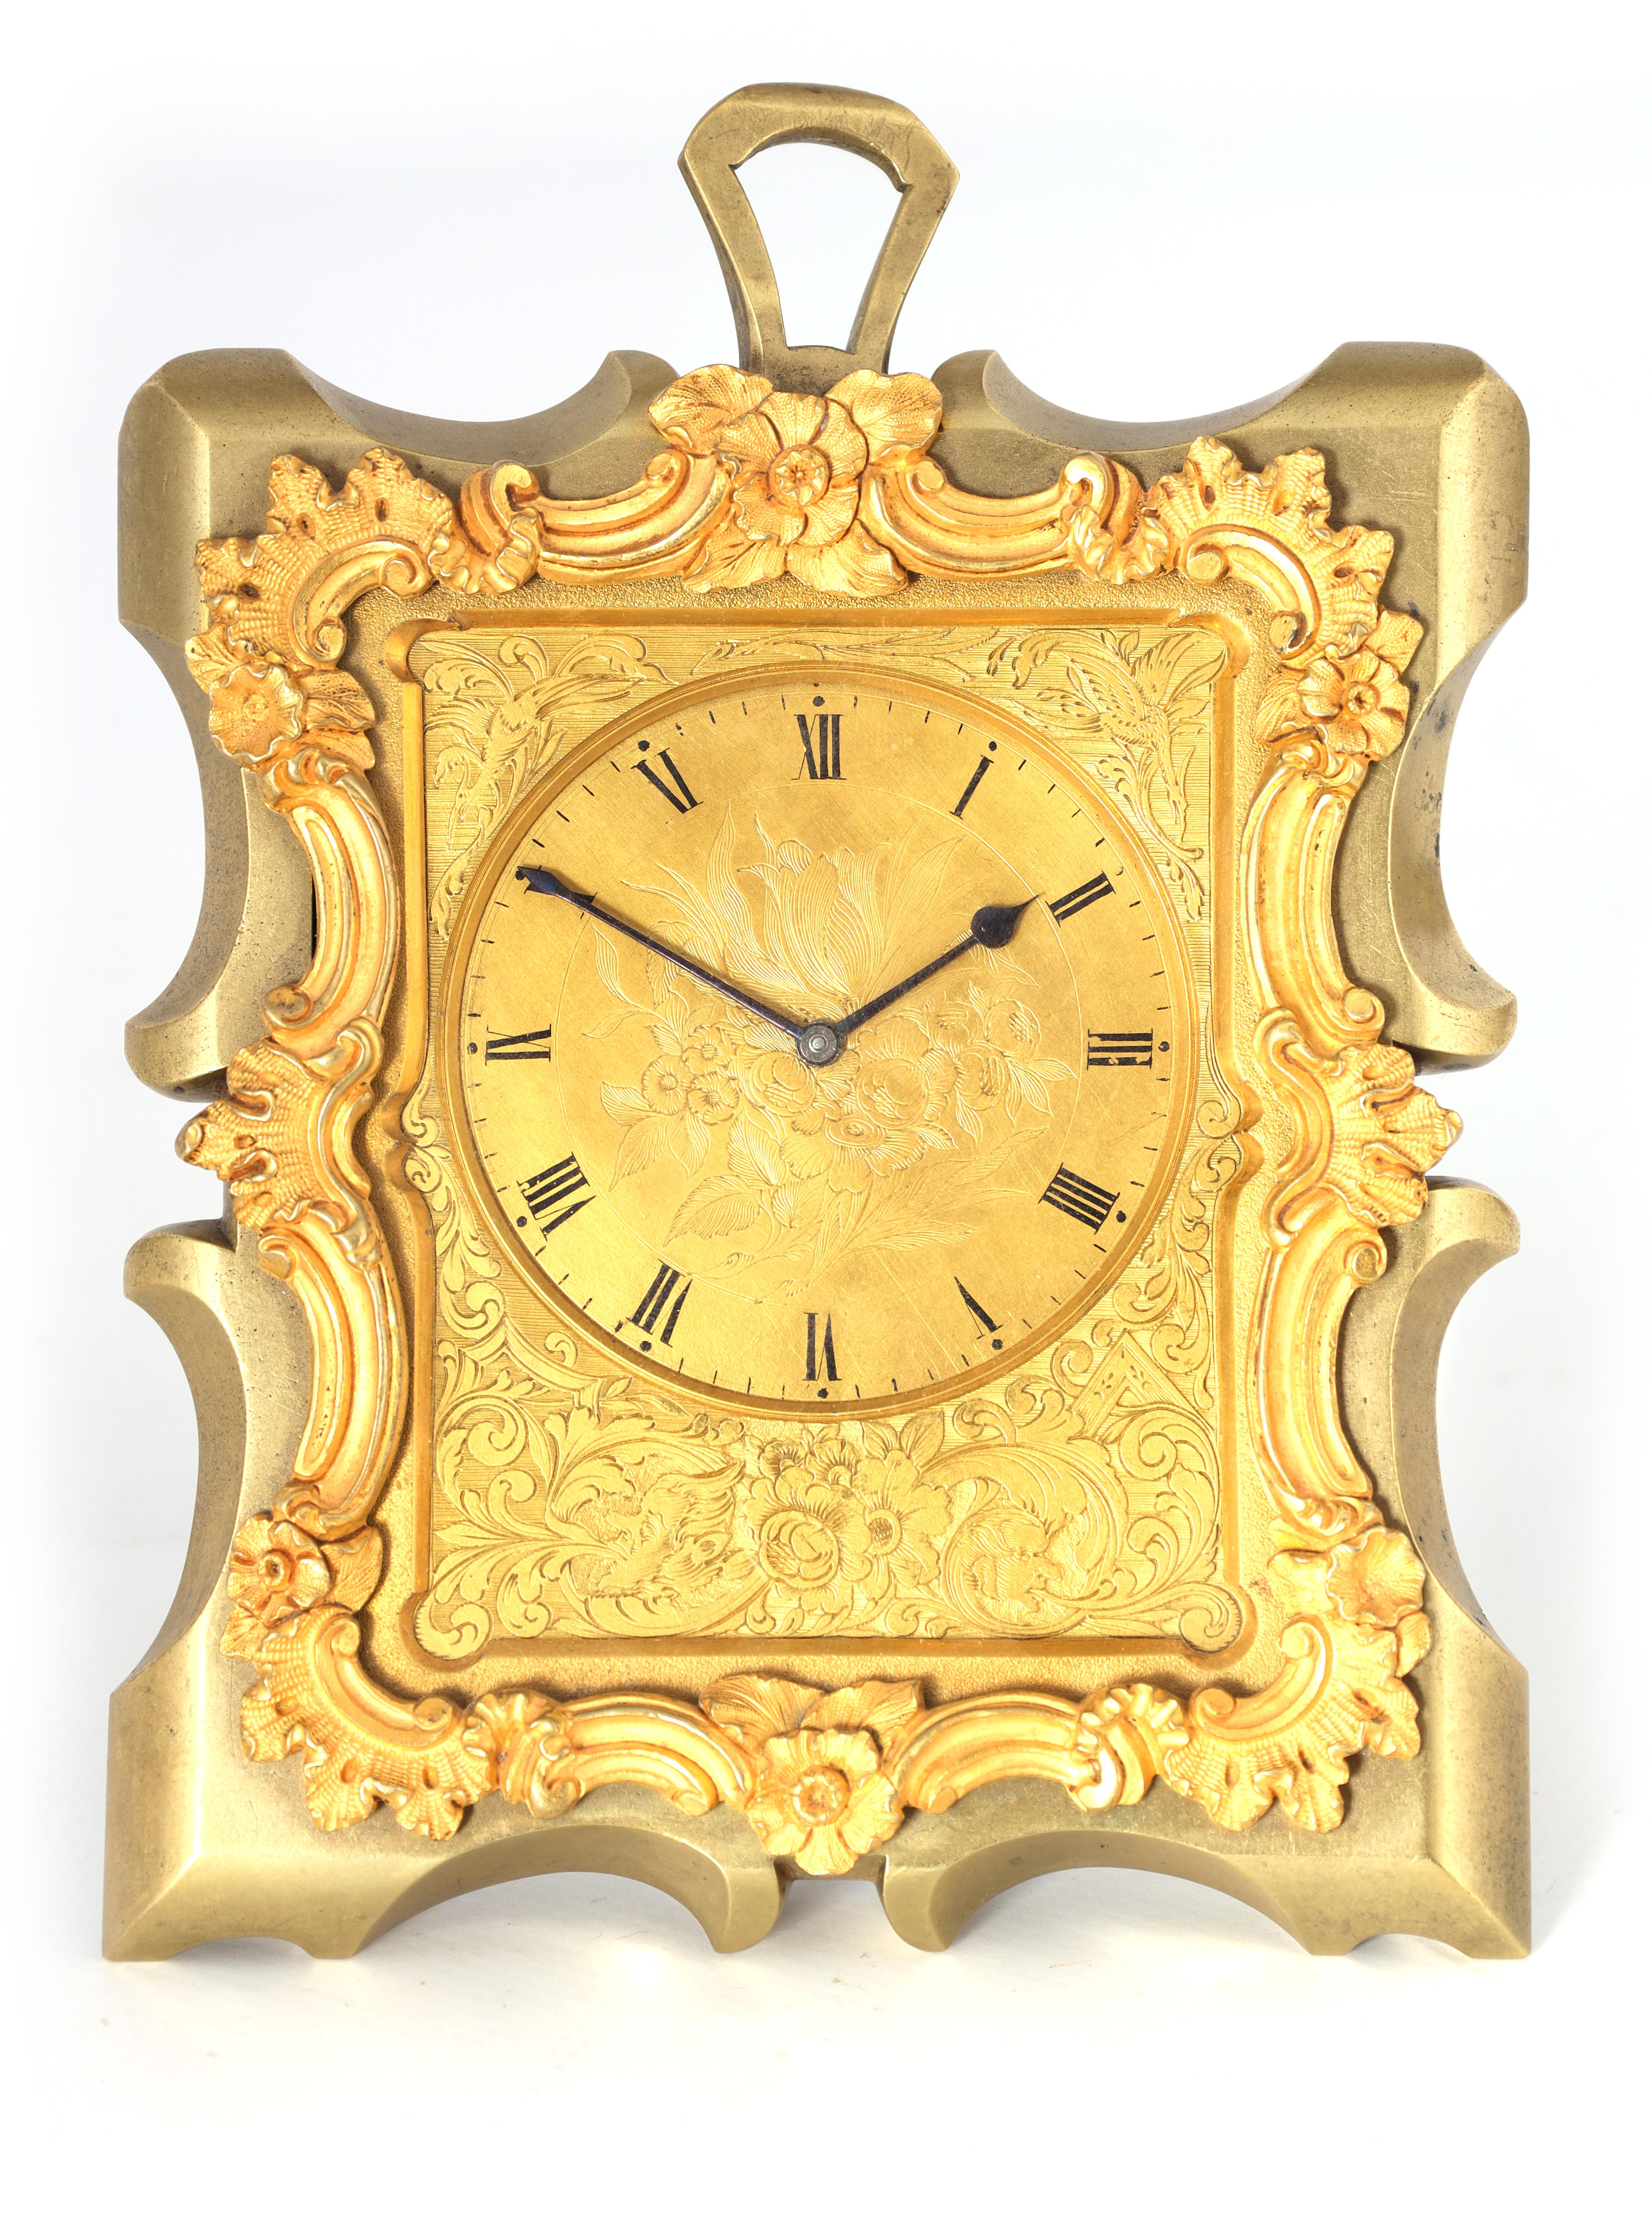 KLEYSER & CO. 66 HIGH STREET, LONDON A MID 19TH CENTURY BRASS STRUT CLOCK IN THE MANNER OF THOMAS